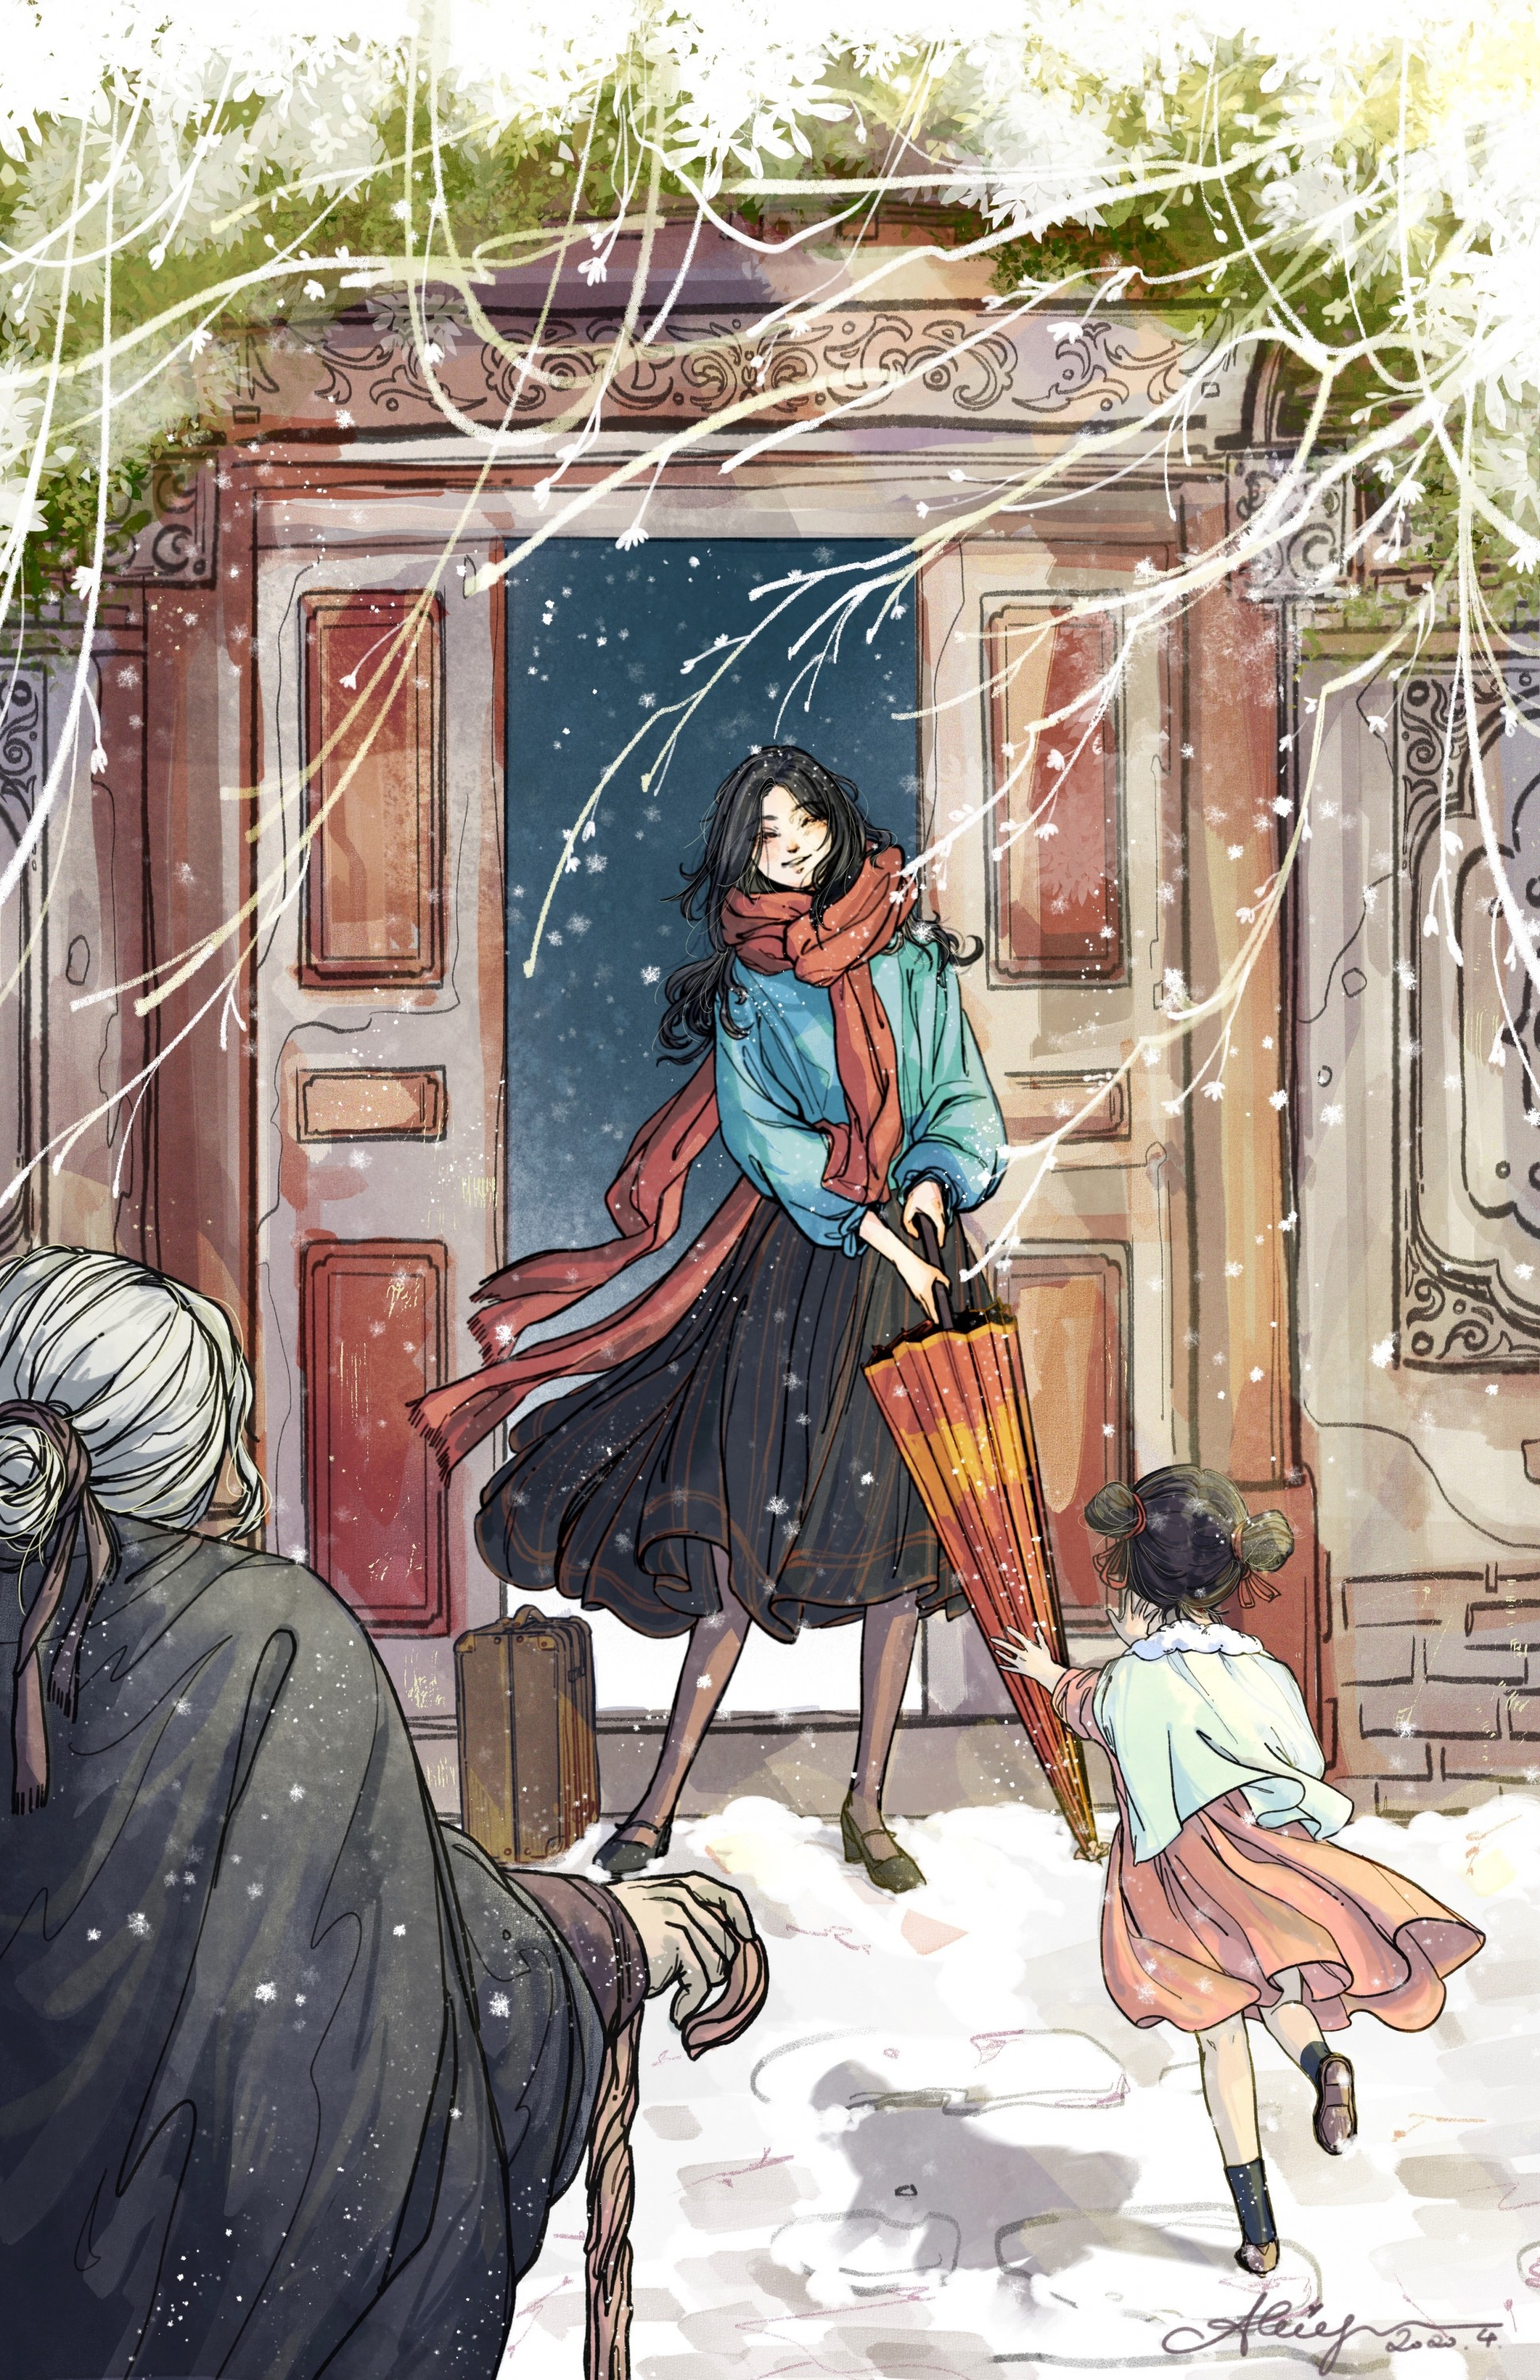 A narrated lovely scene about a young lady just got back home from her long term study abroad season and getting a warm welcome by her family on a snowy day.